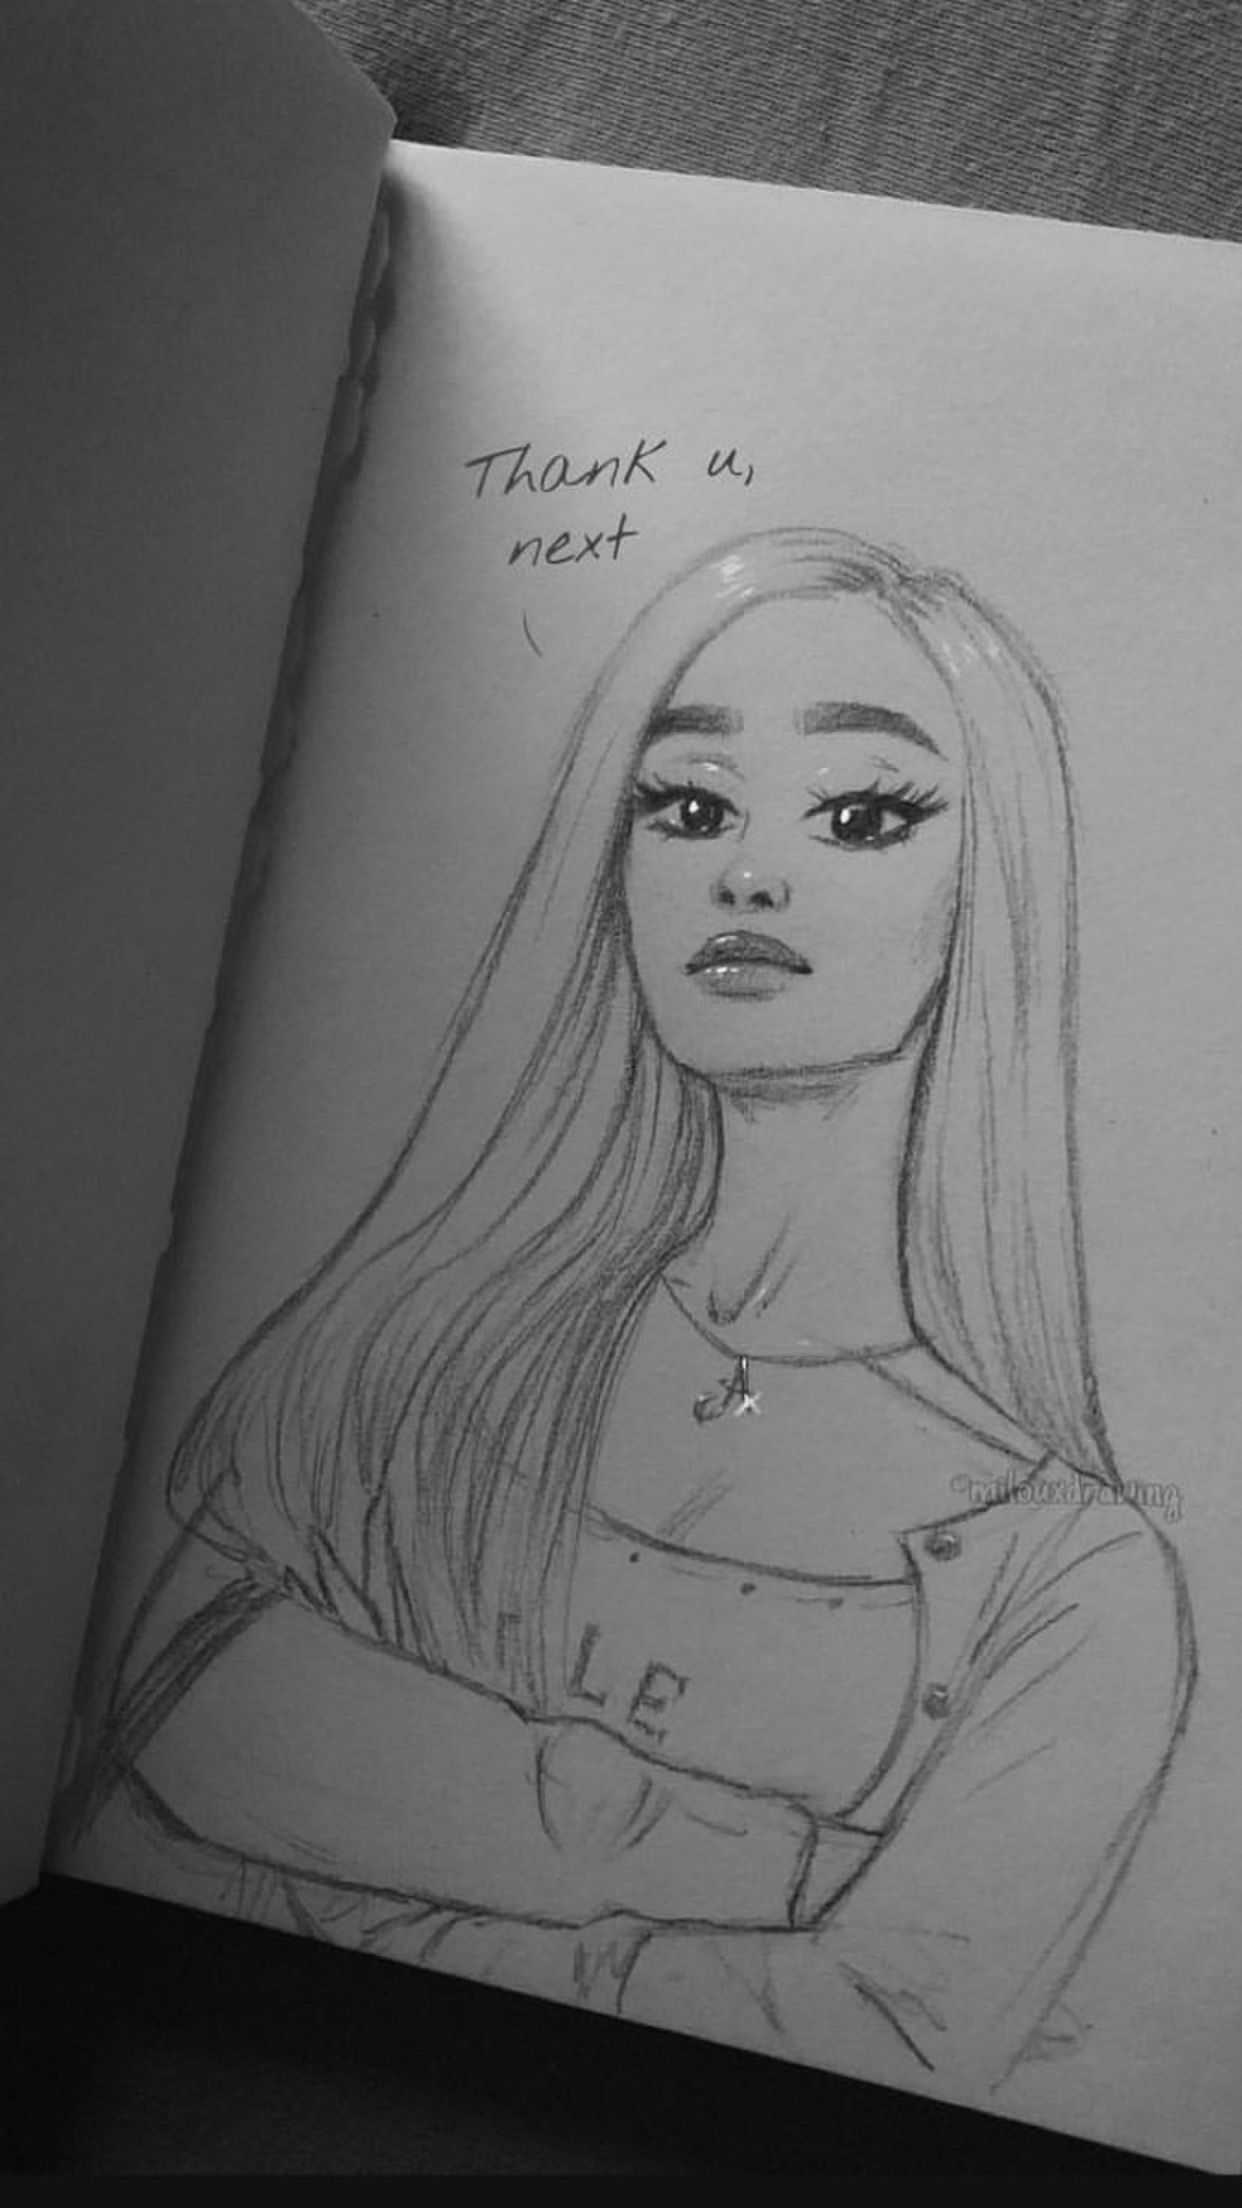 Ariana grande drawings love drawings art drawings sketches pencil drawings pretty drawings